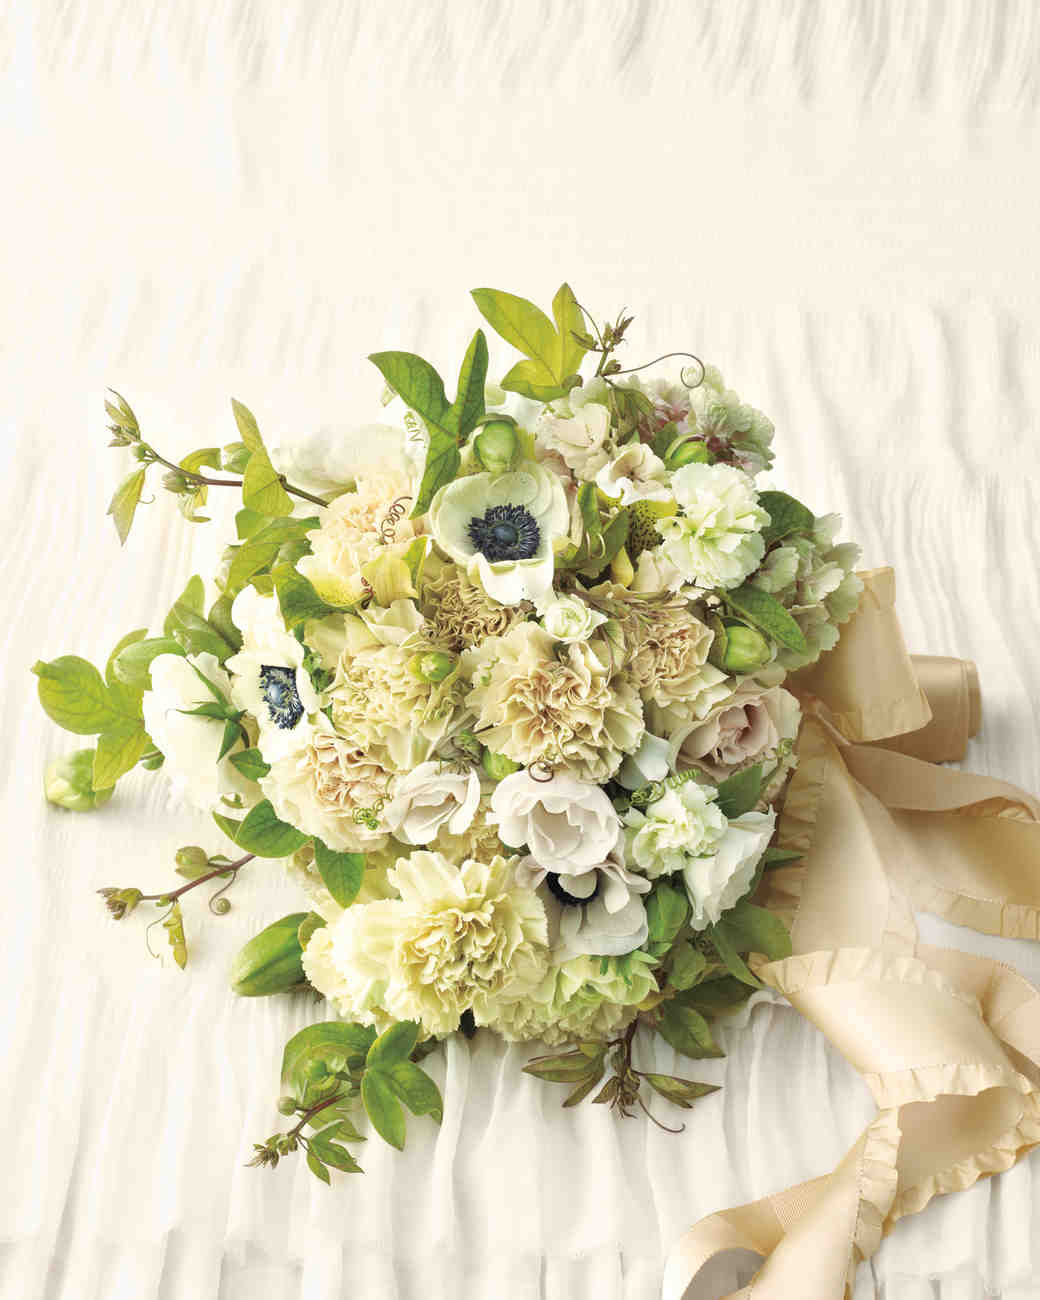 Wedding Flowers Bouquet Ideas: Carnation Wedding Ideas (Yes, It's More Than A Filler